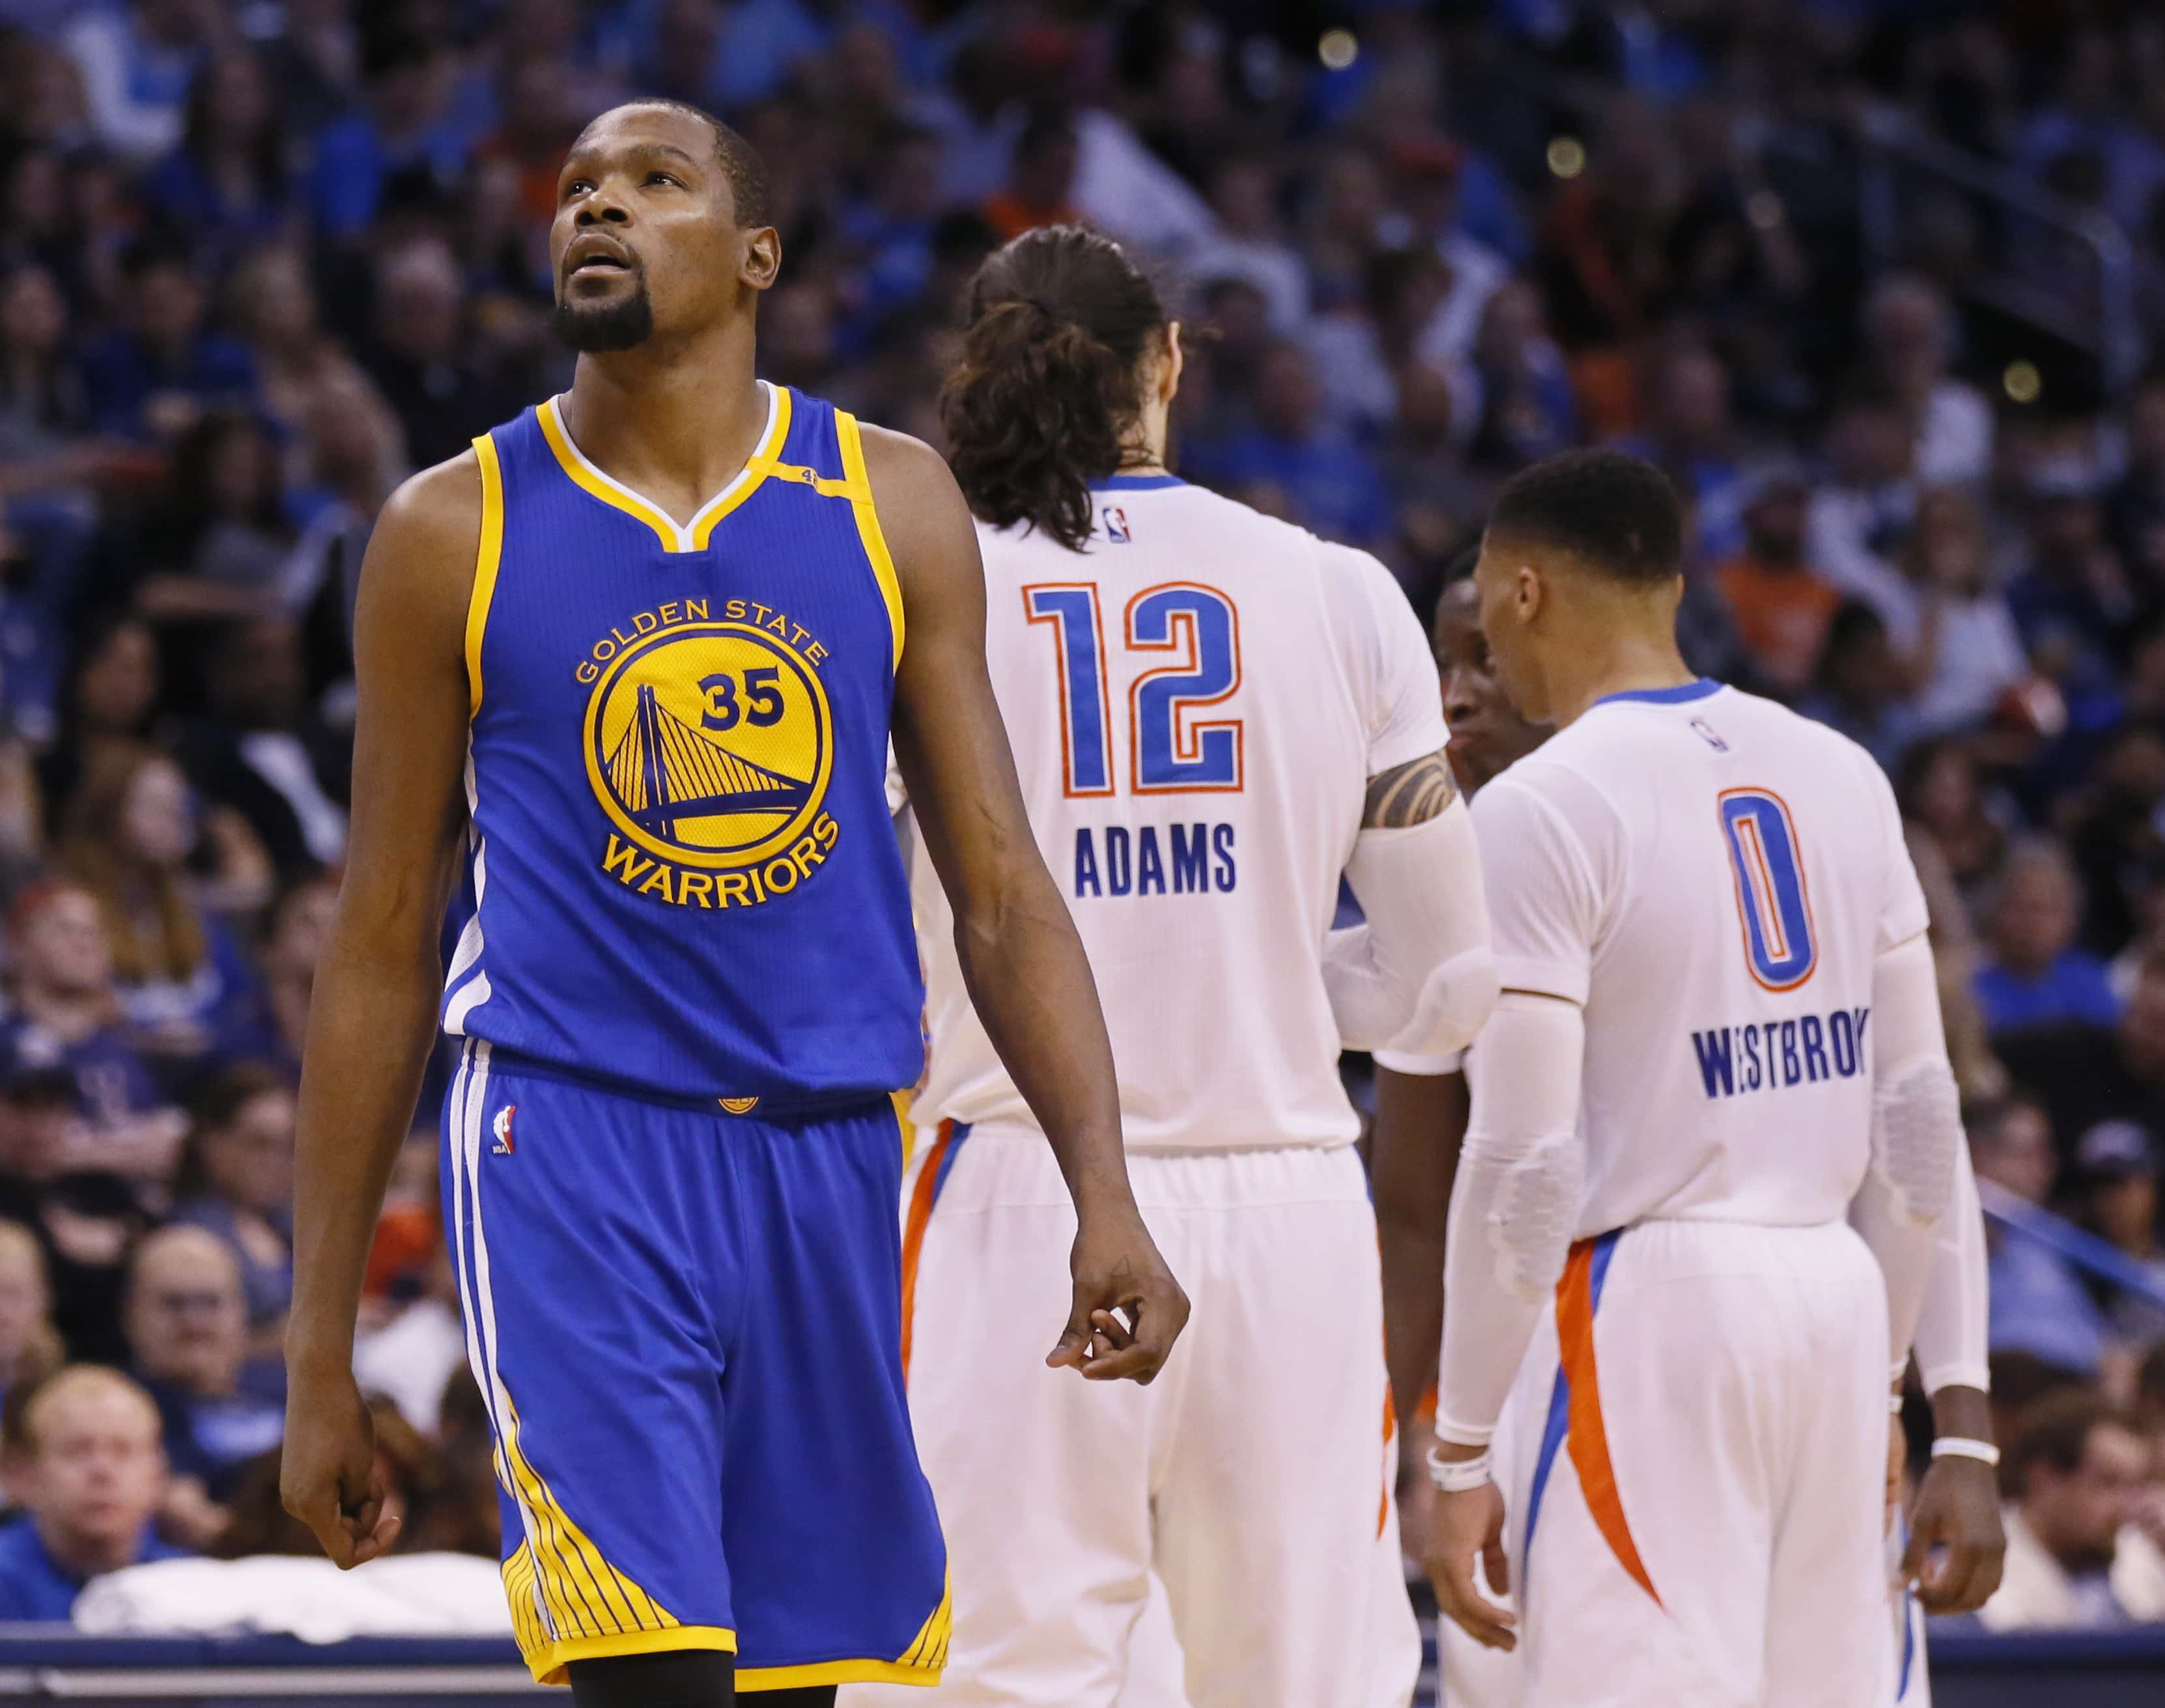 Golden State Warriors forward Kevin Durant (35) walks past former teammates Oklahoma City Thunder center Steven Adams (12) and guard Russell Westbrook (0) in the second quarter of an NBA basketball game in Oklahoma City, Saturday, Feb. 11, 2017. (AP Photo/Sue Ogrocki)